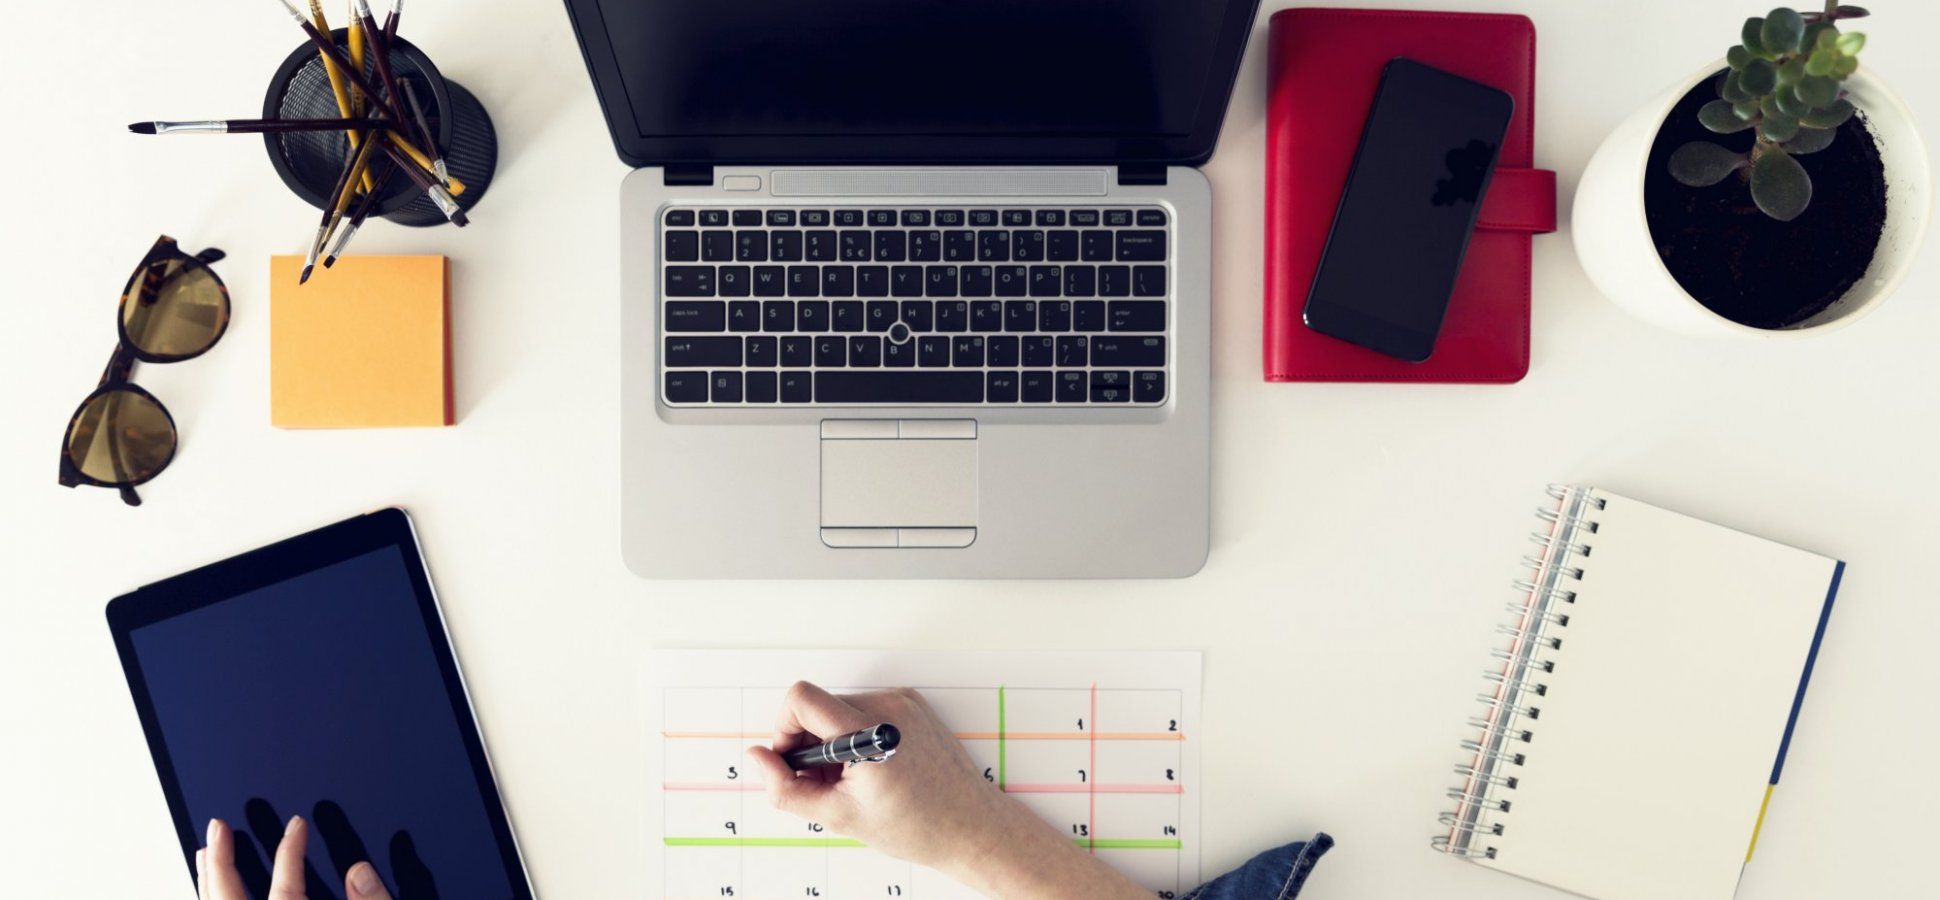 5 Critically Important Things to Do at the End of Every Workday